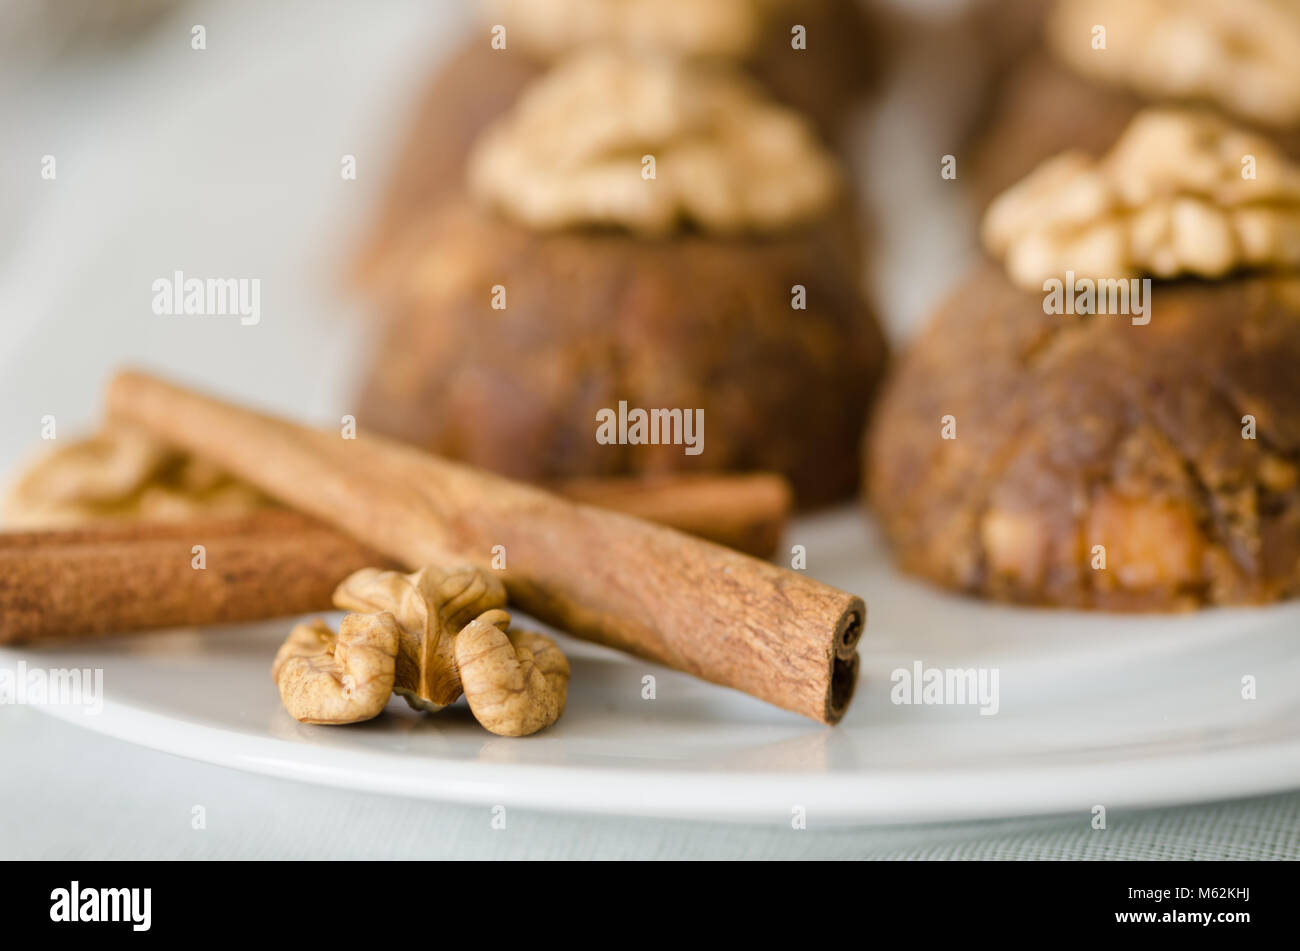 Traditional Turkish sweet dessert halva with walnut on the white plate. - Stock Image